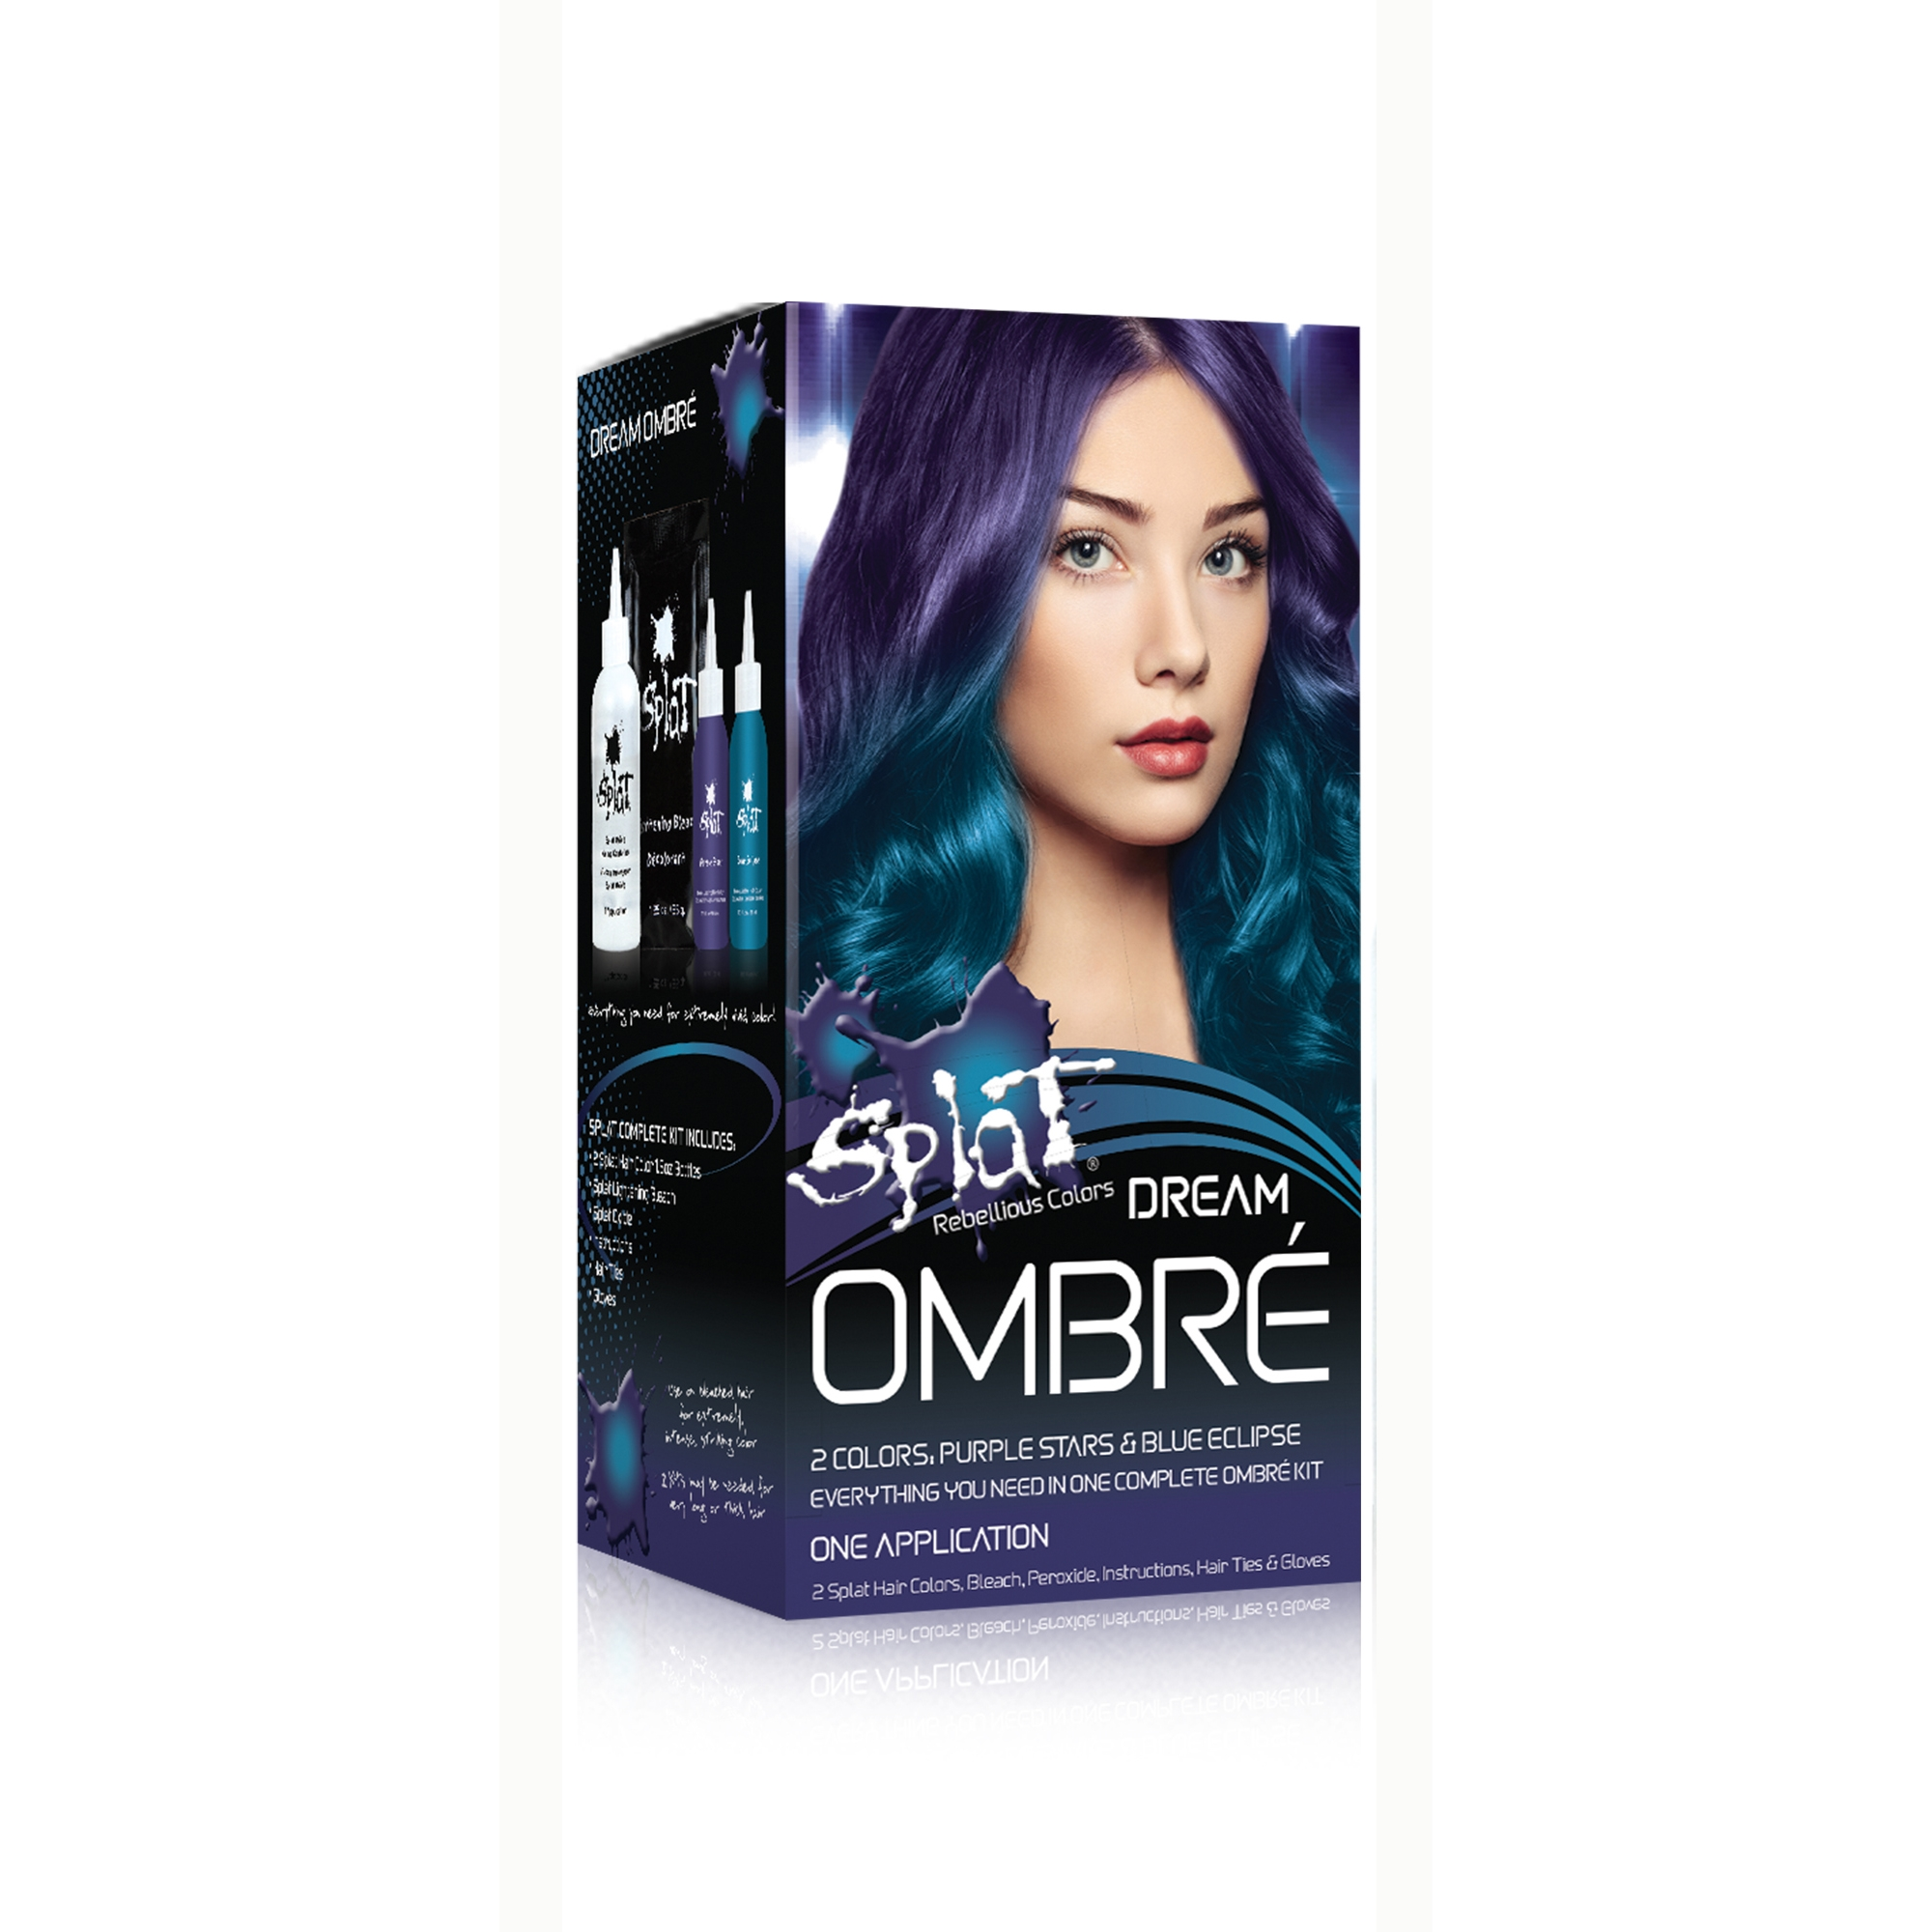 Splat 30 Wash Semi Permanent Hair Dye Kit Ombre Dream Walmart Com